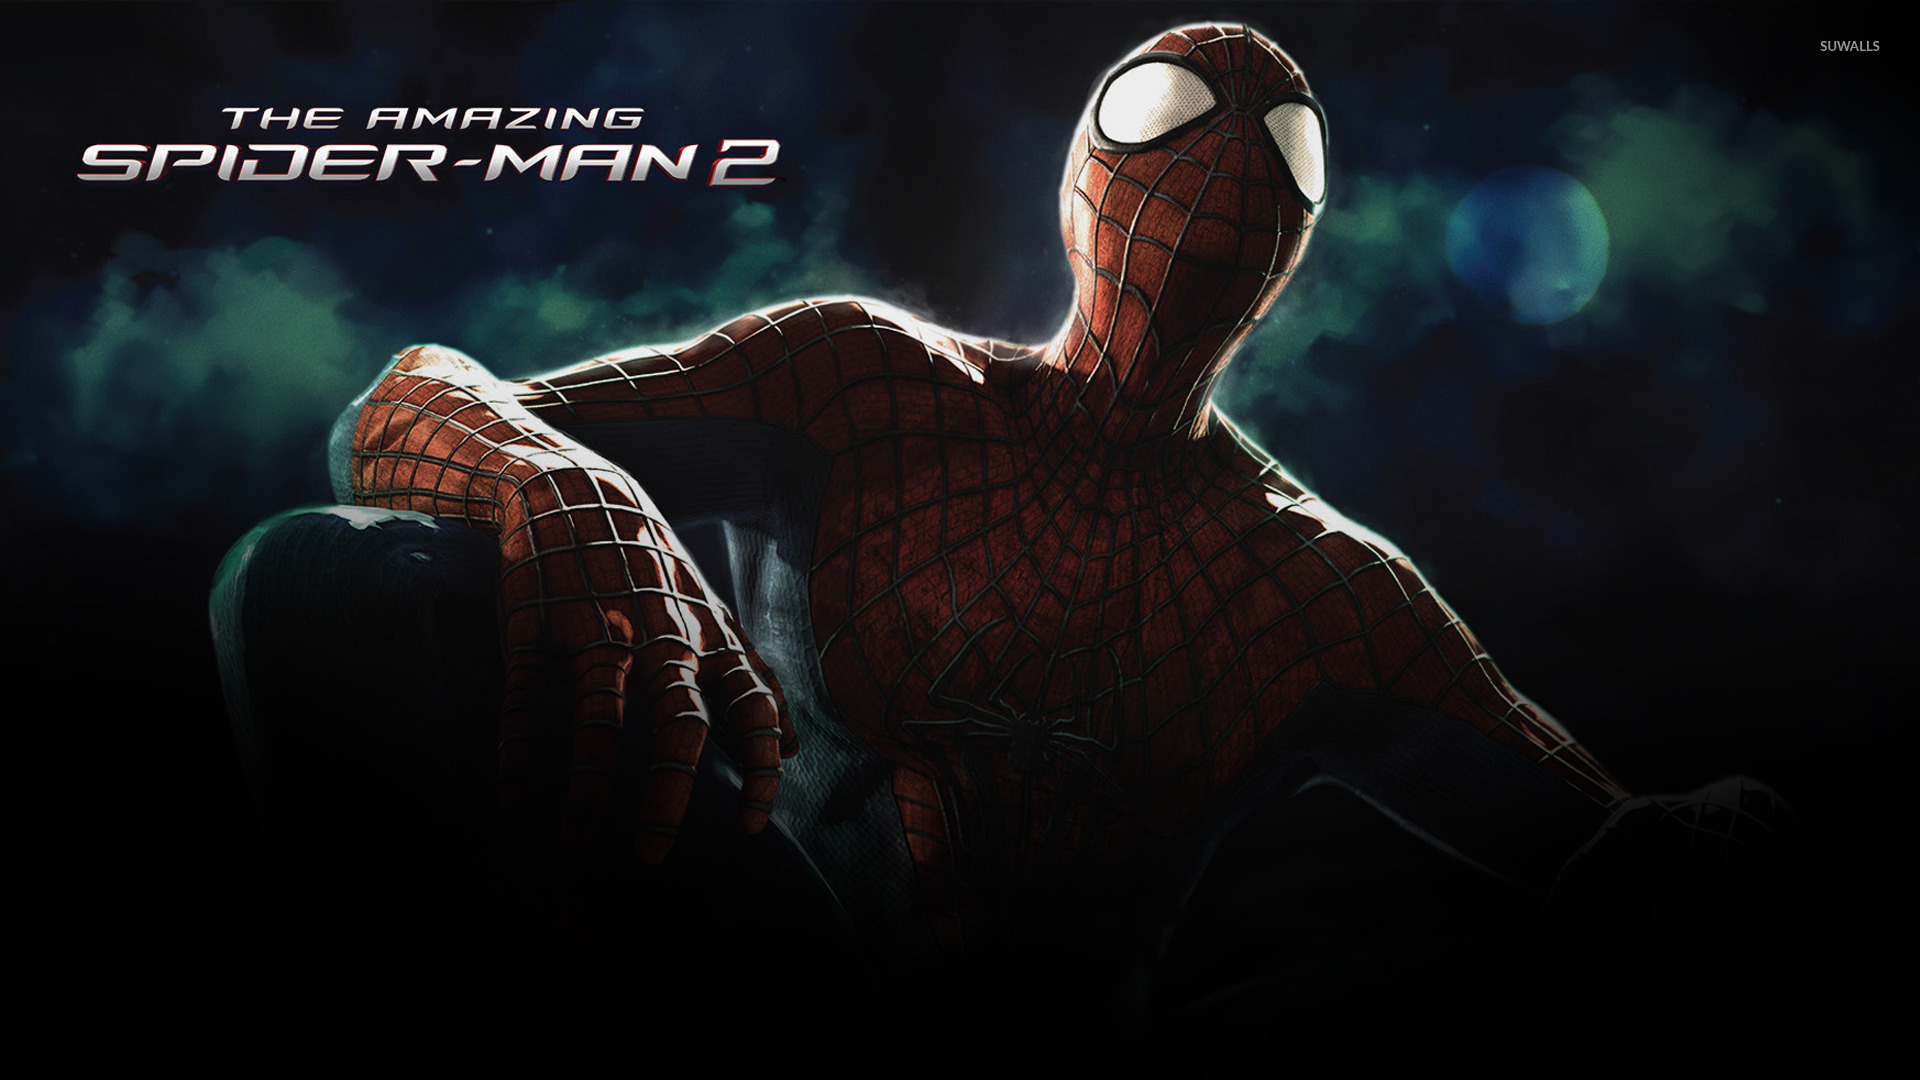 the amazing spiderman 2 wallpaper movie wallpapers 26293